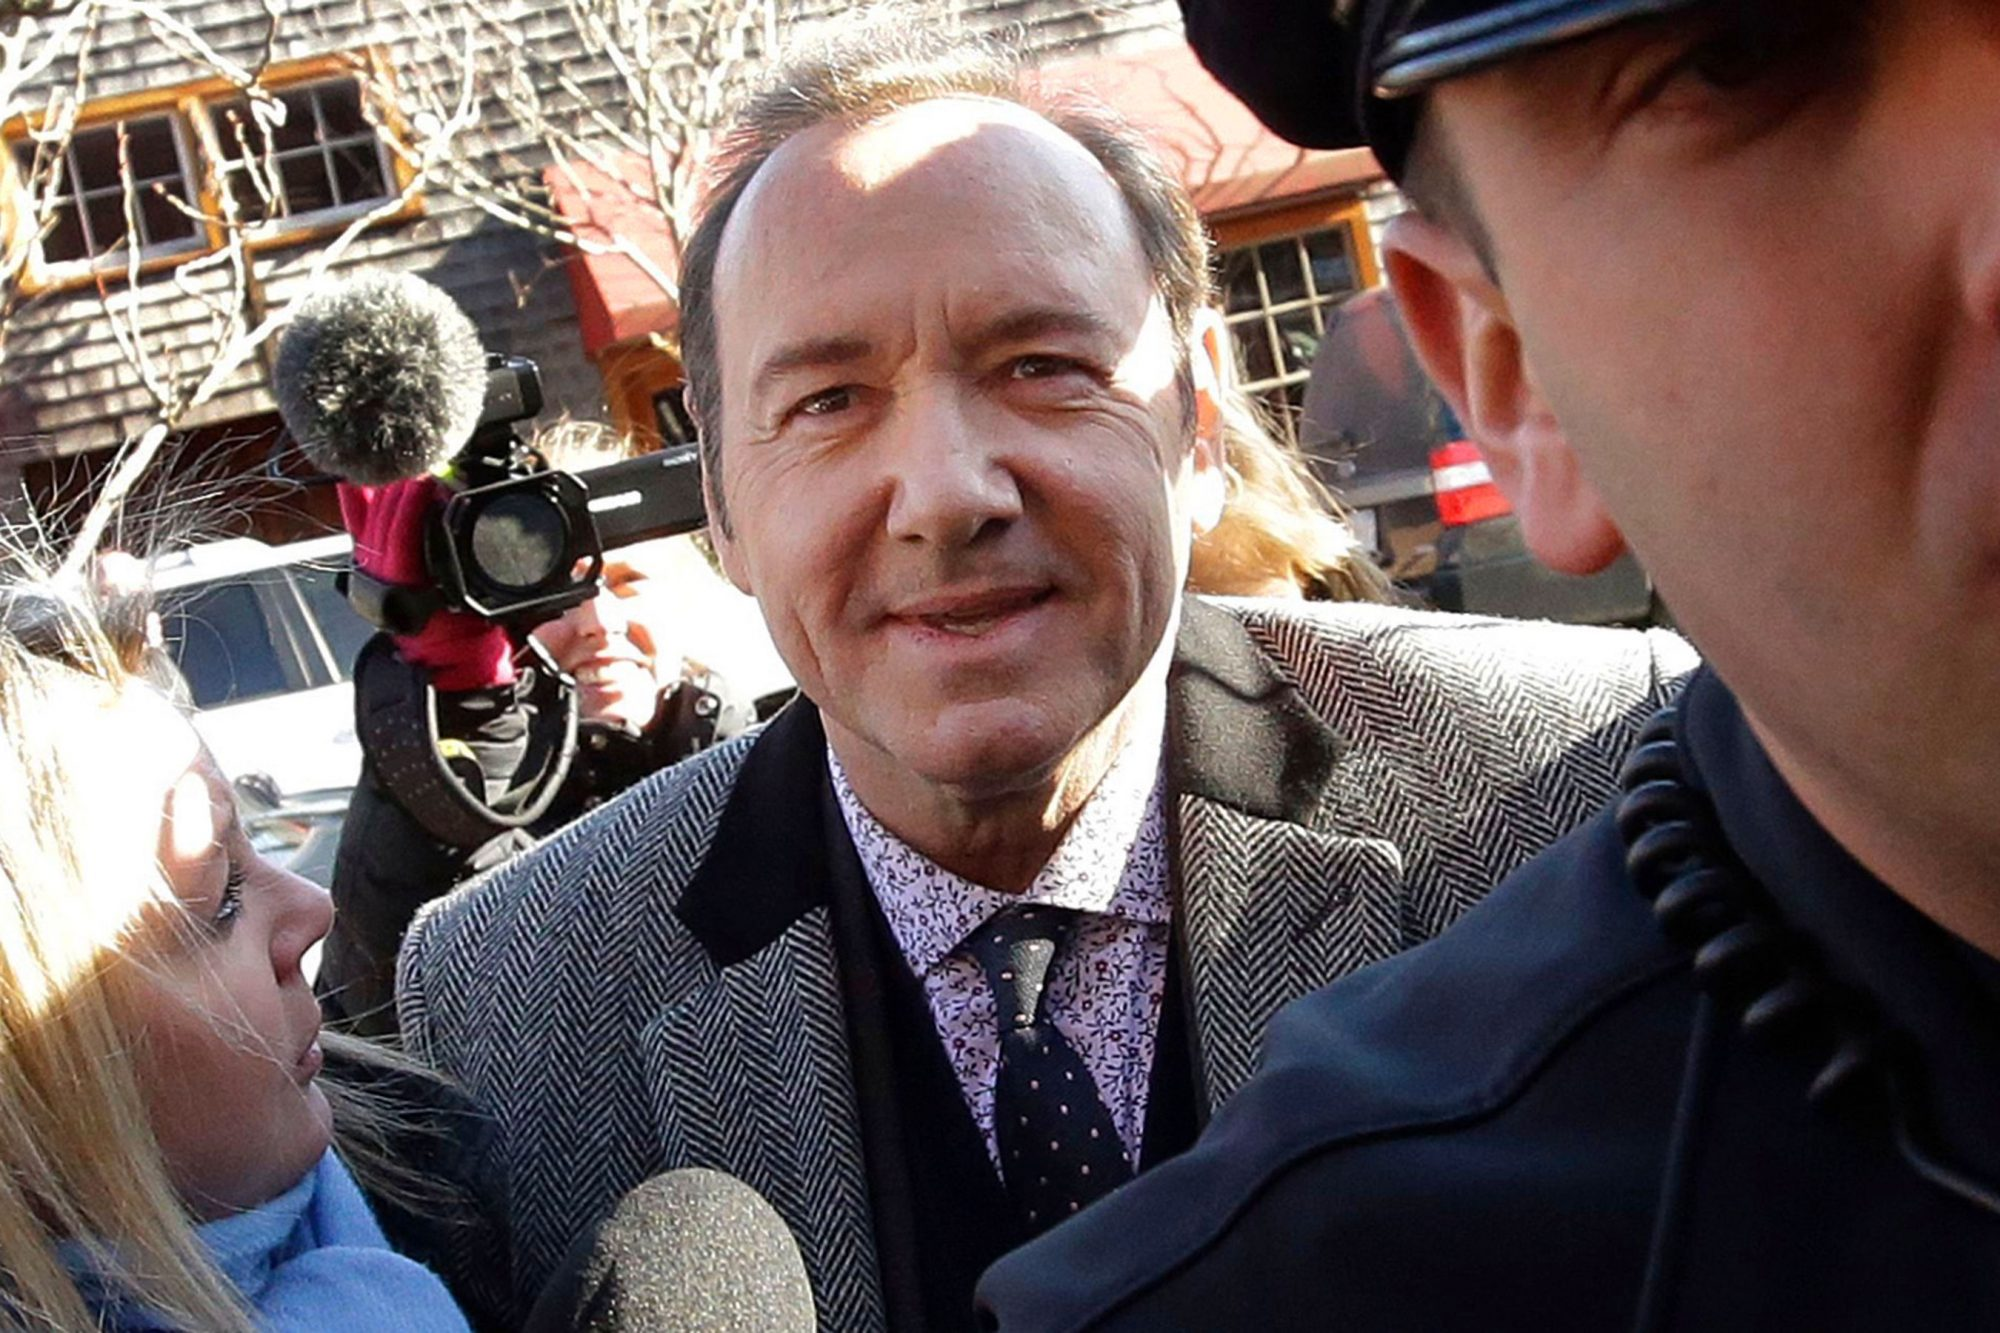 Sexual Misconduct Kevin Spacey, Nantucket, USA - 07 Jan 2019